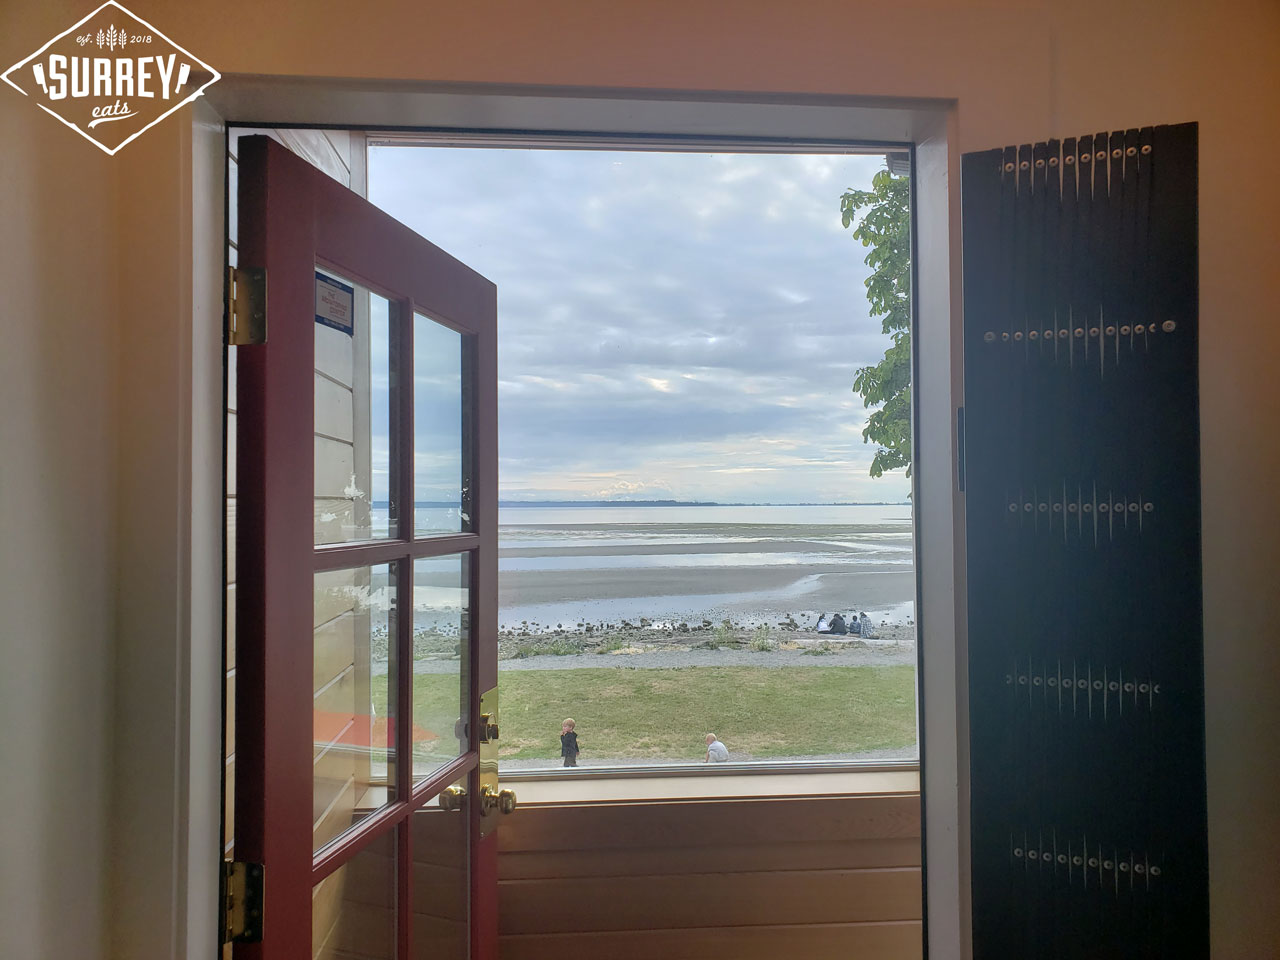 Crescent Beach viewed through the front door of Cotto al Mare restaurant